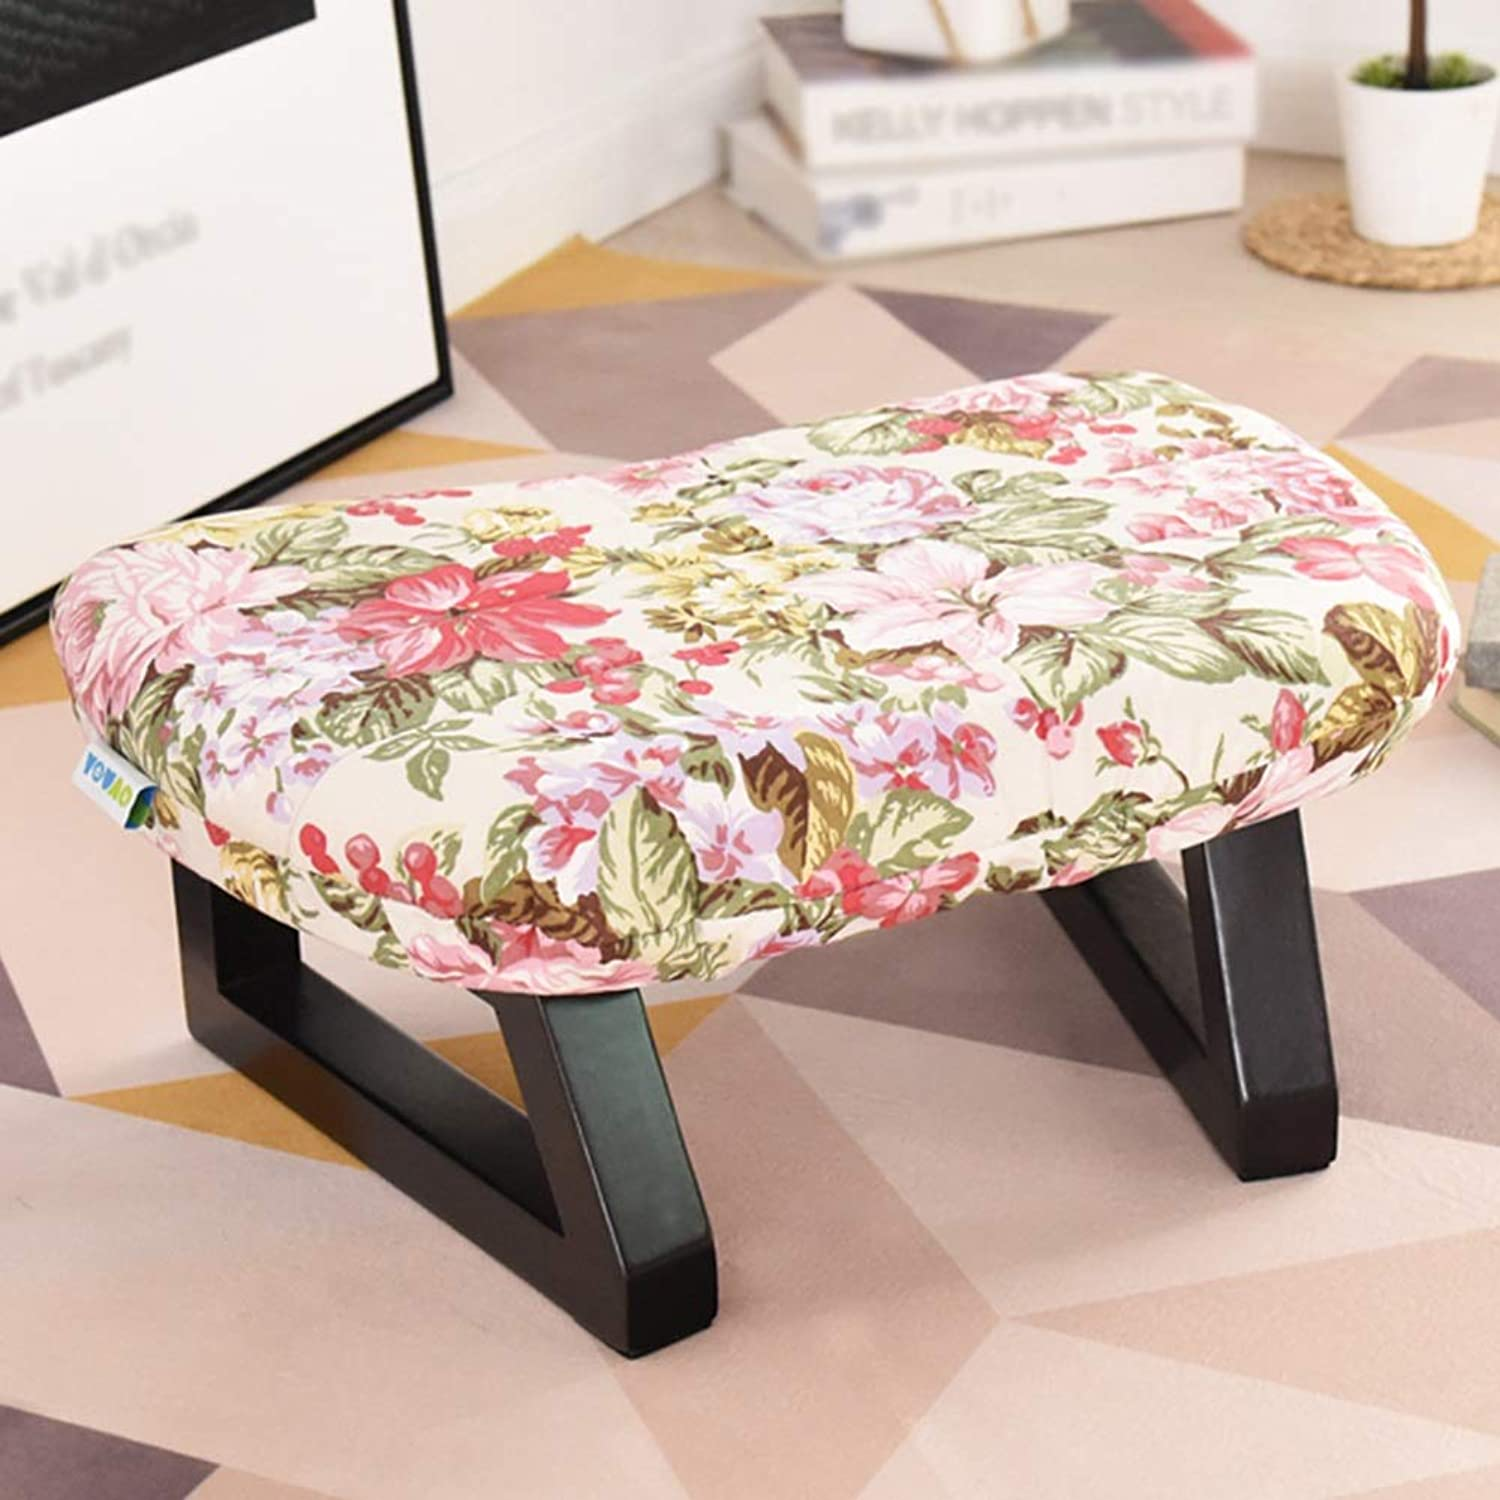 ZHAOYONGLI Stools Footstool Work Stool Step Stool Household Fashion Cloth Detachable Sofa Bench Change shoes Solid Wood Creative Solid Durable Long Lasting (color   Flower -18)